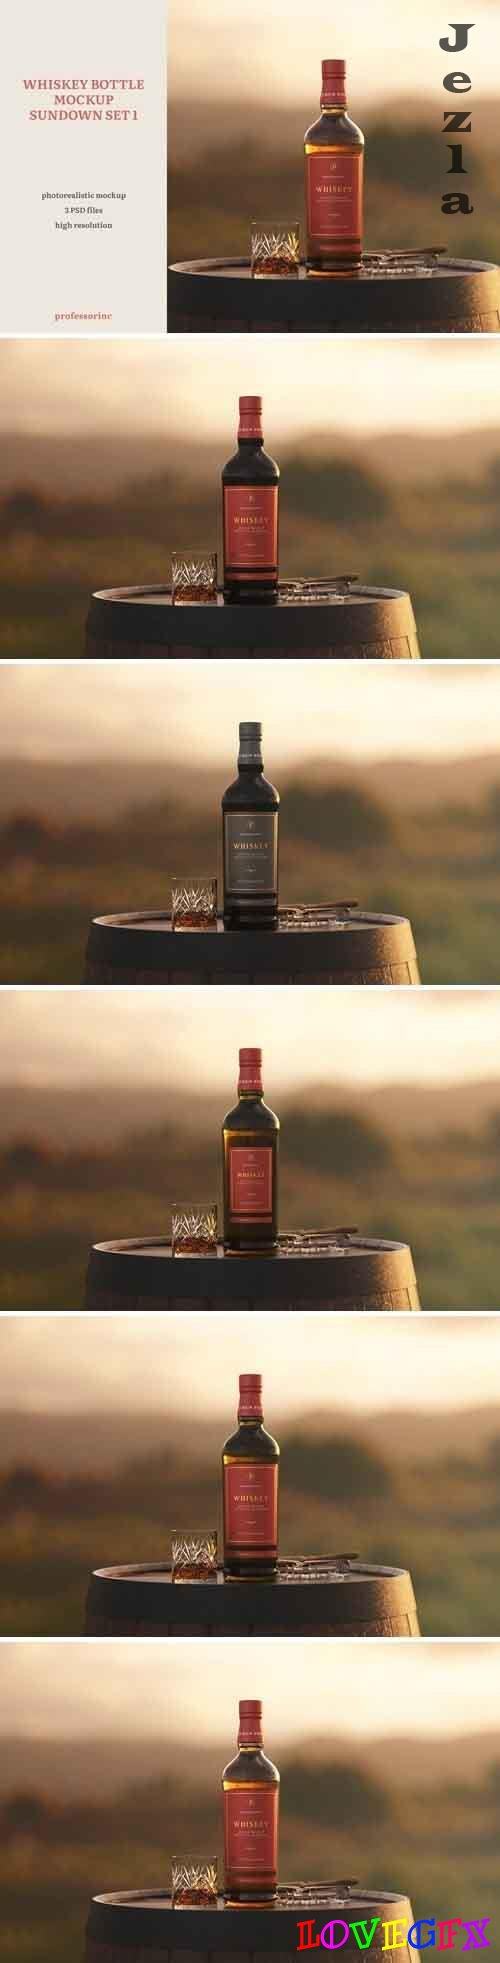 Whiskey Bottle Mockup - Sundown Set 1